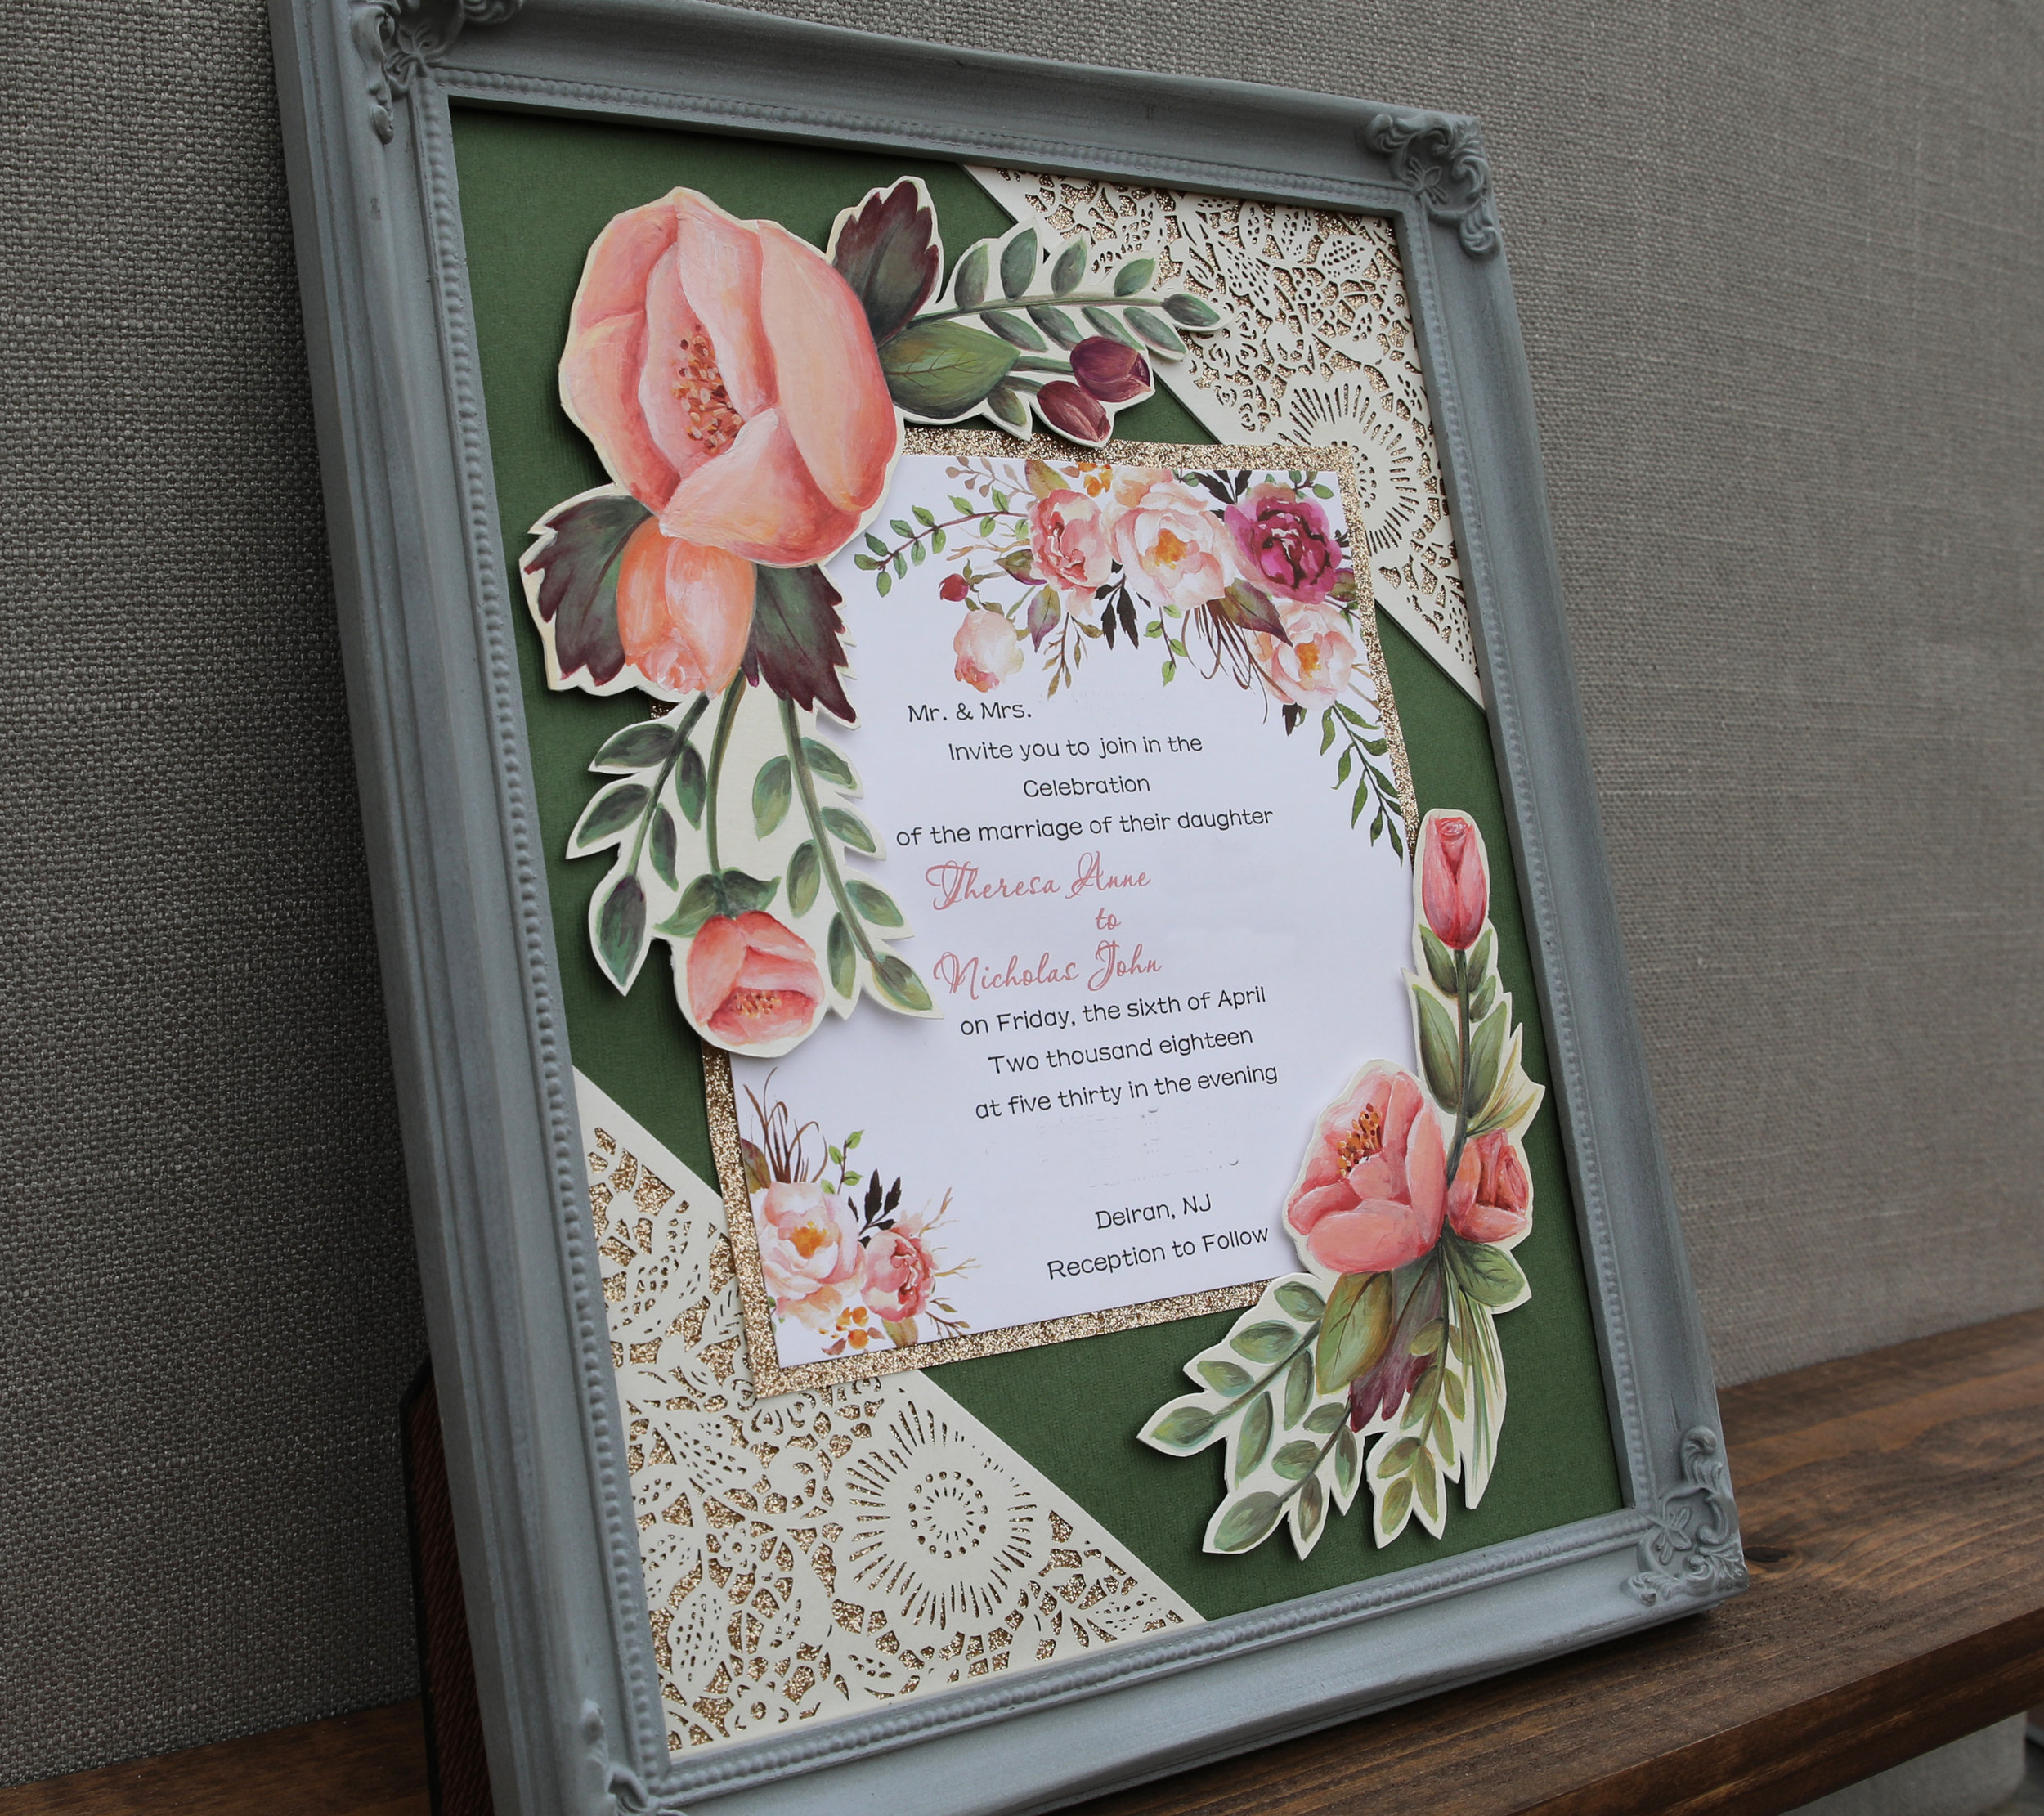 _floral invitation keepsake6.jpg